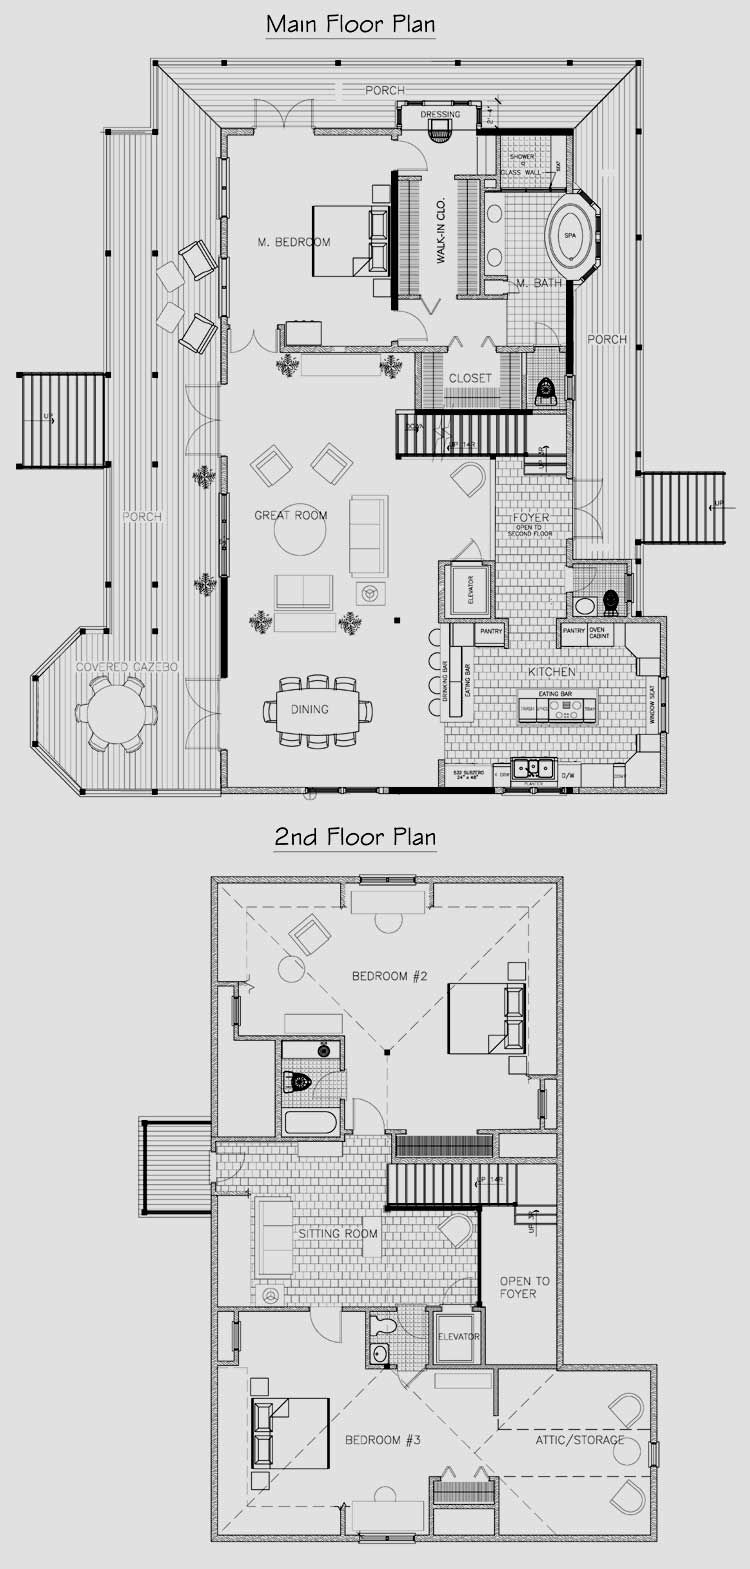 Find my house layout